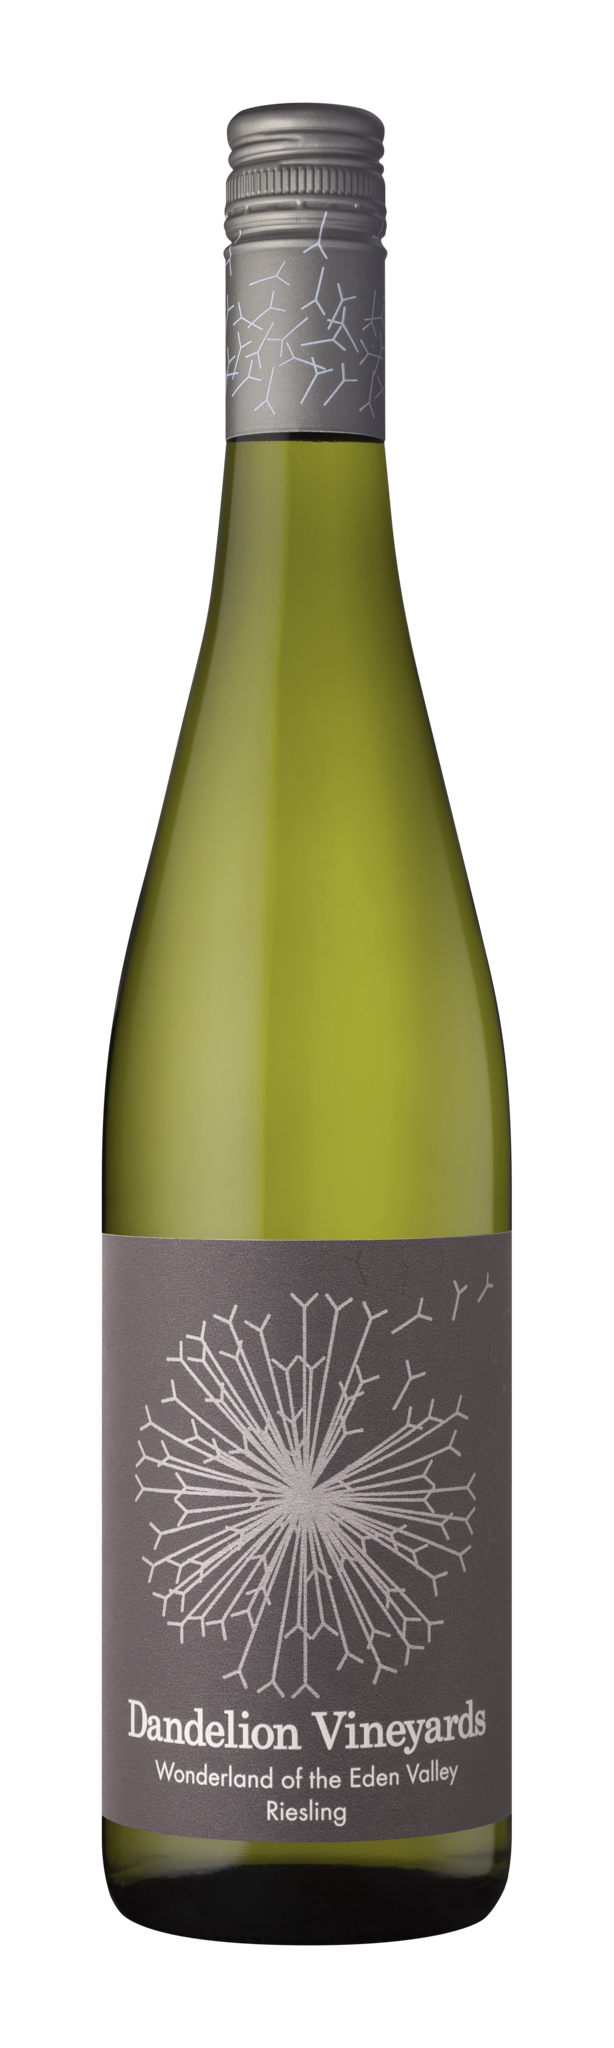 Wonderland of the Eden Valley Riesling 2017